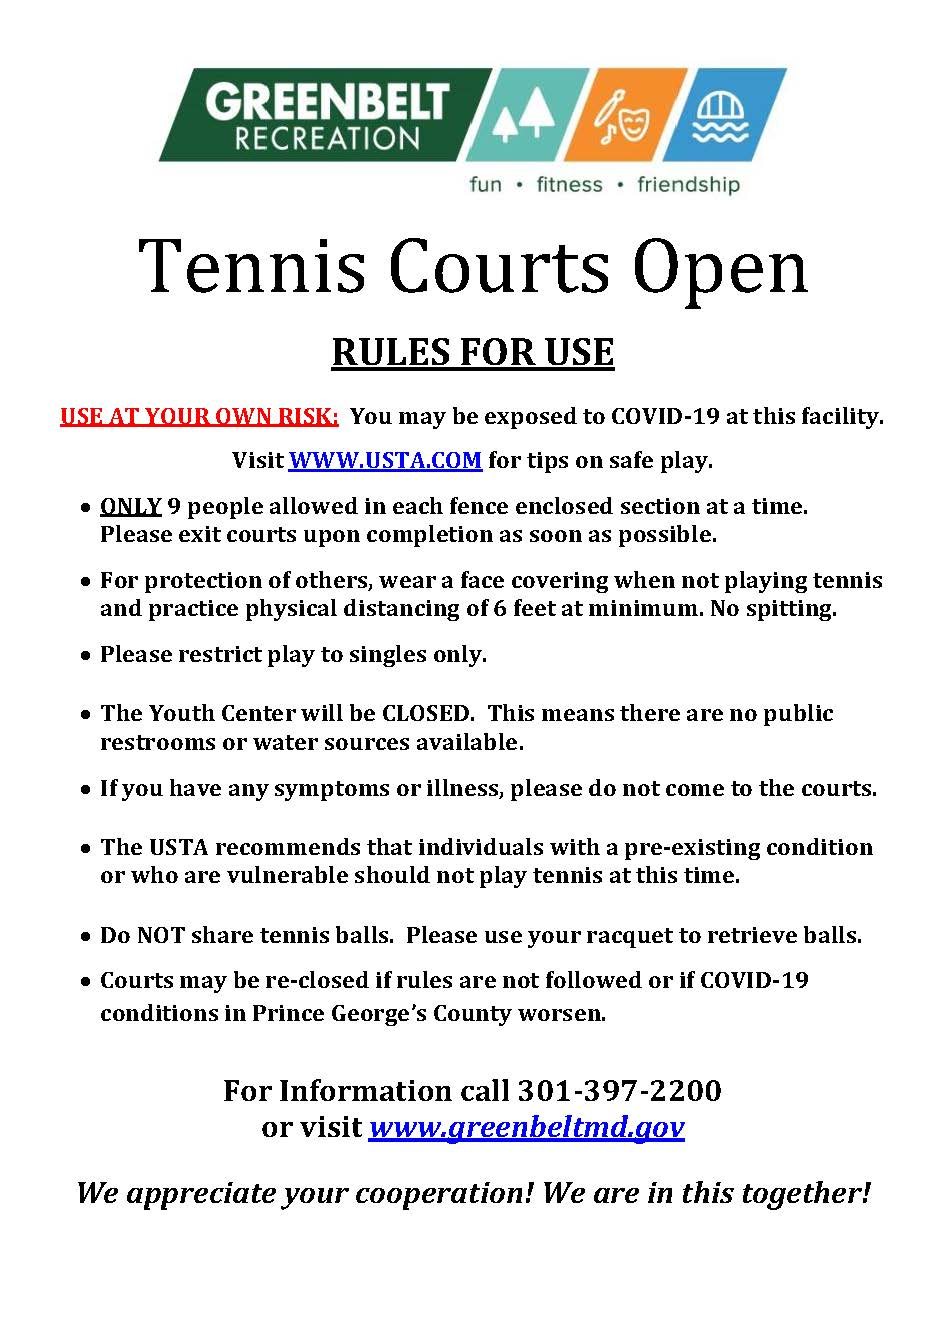 Tennis Courts Open May 22